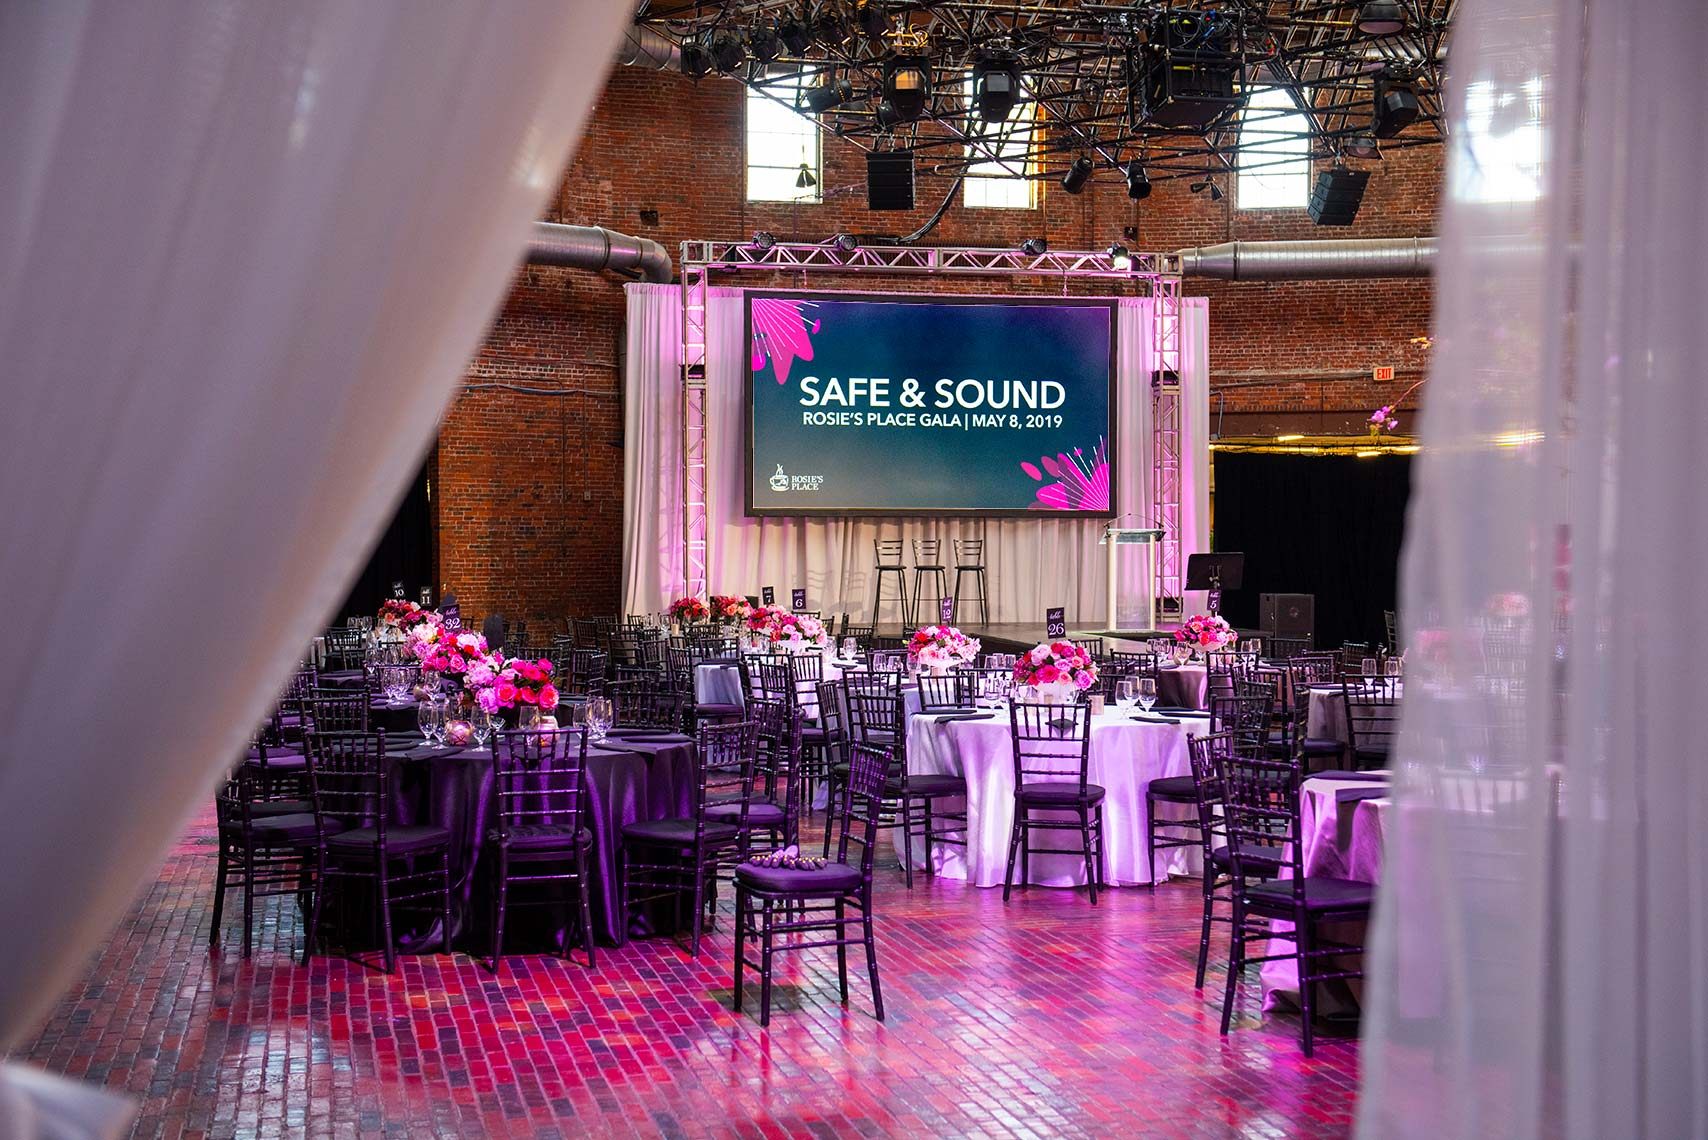 Room decor for the Safe and Sound fundraising gala for Rosie